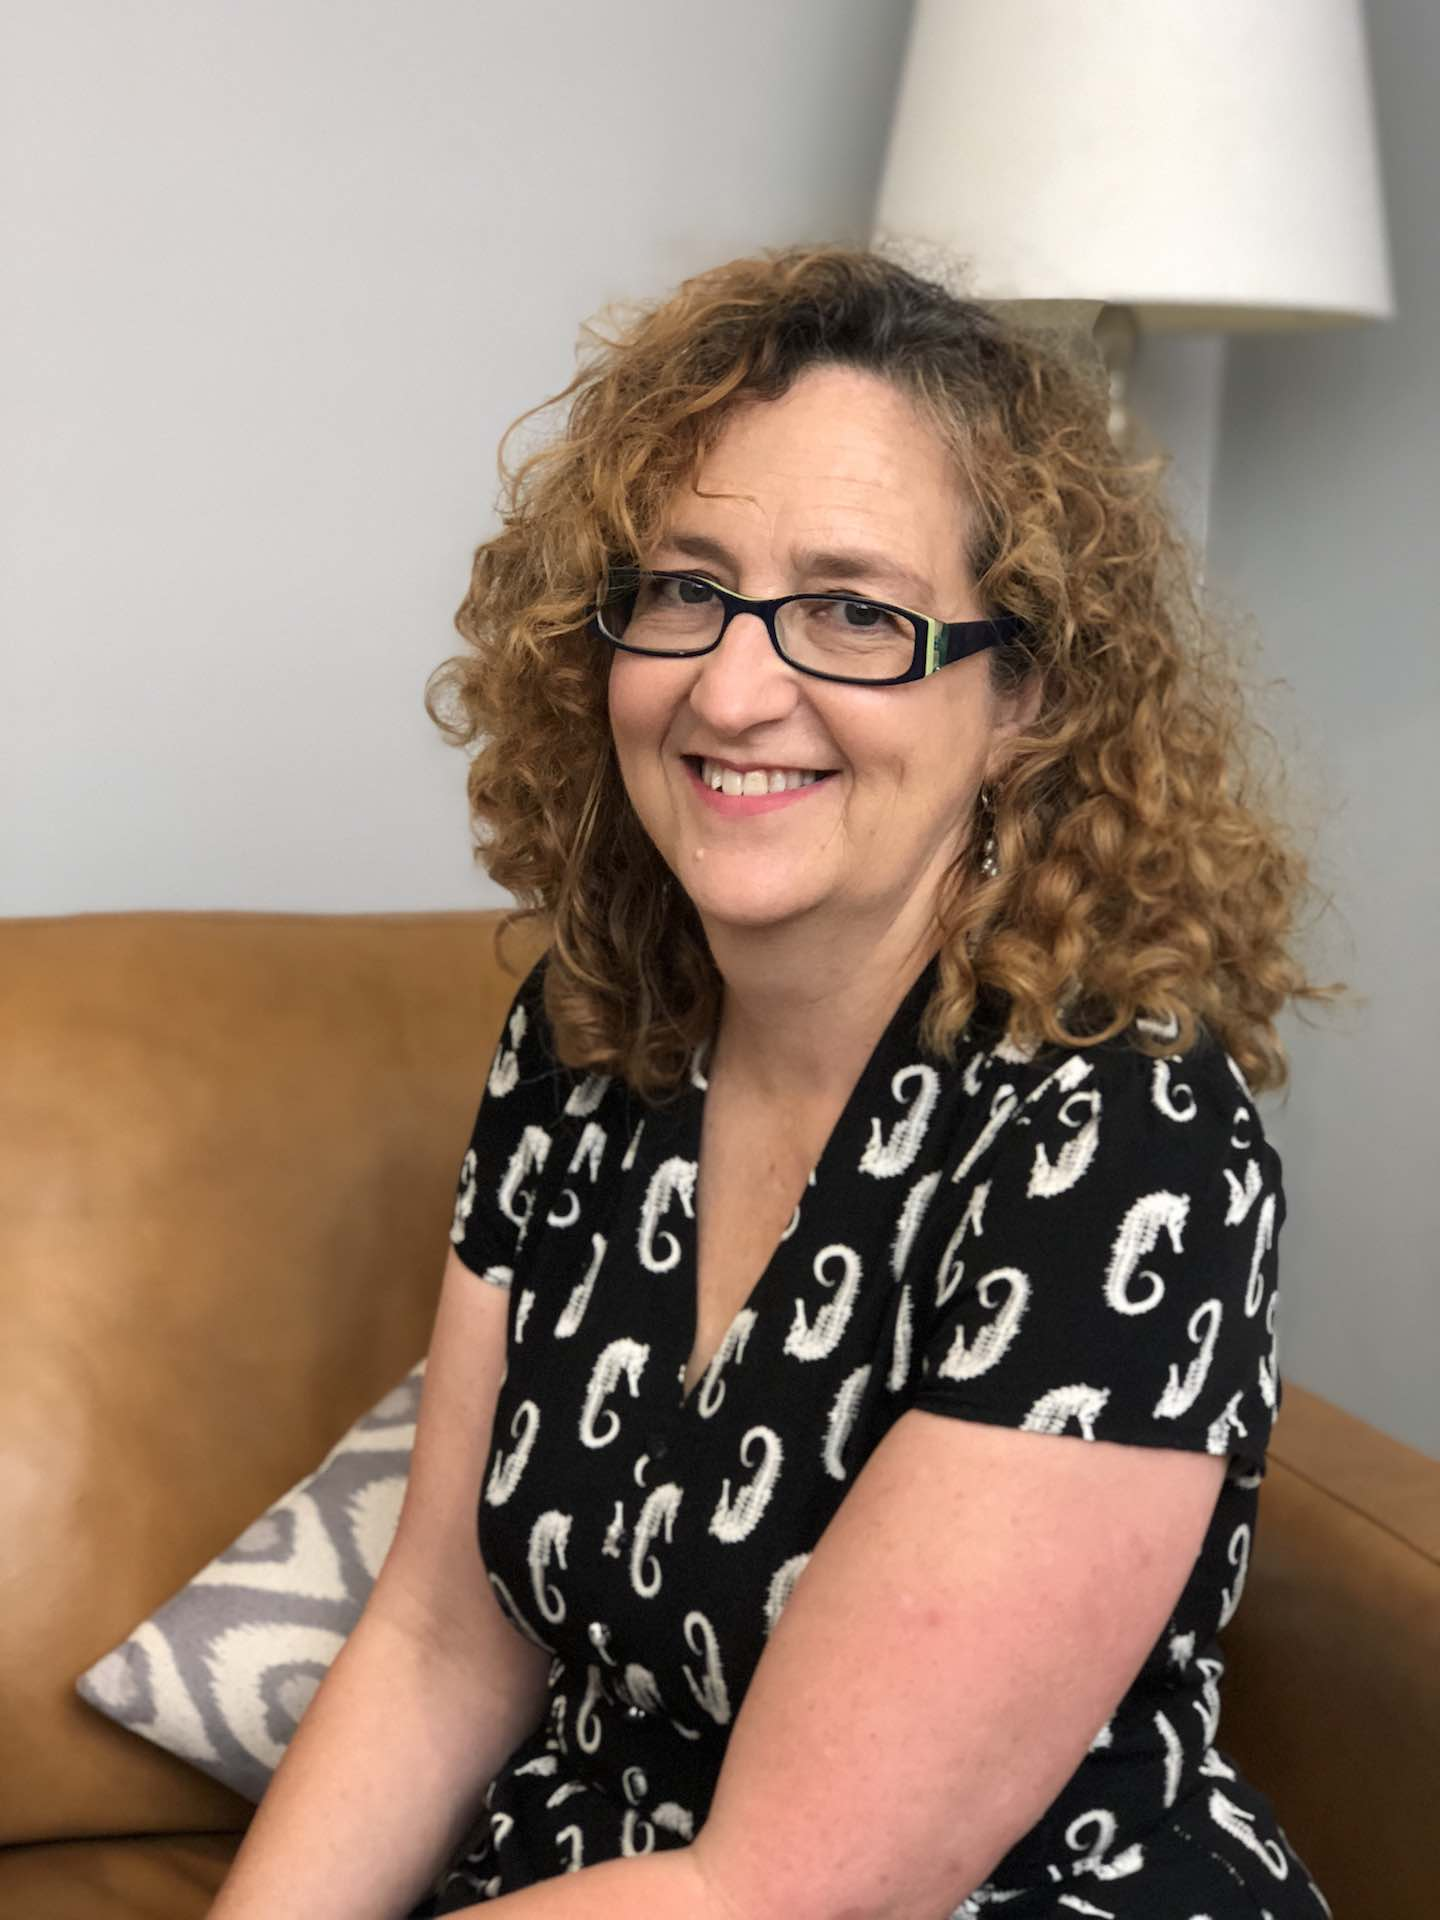 Carey Little - Psychologist (Clinical Registrar) - Uses Cognitive Behaviour Therapy (CBT), Acceptance Commitment Therapy (ACT), Dialectical Behavioural Therapy (DBT), Mindfulness, and Narrative therapy